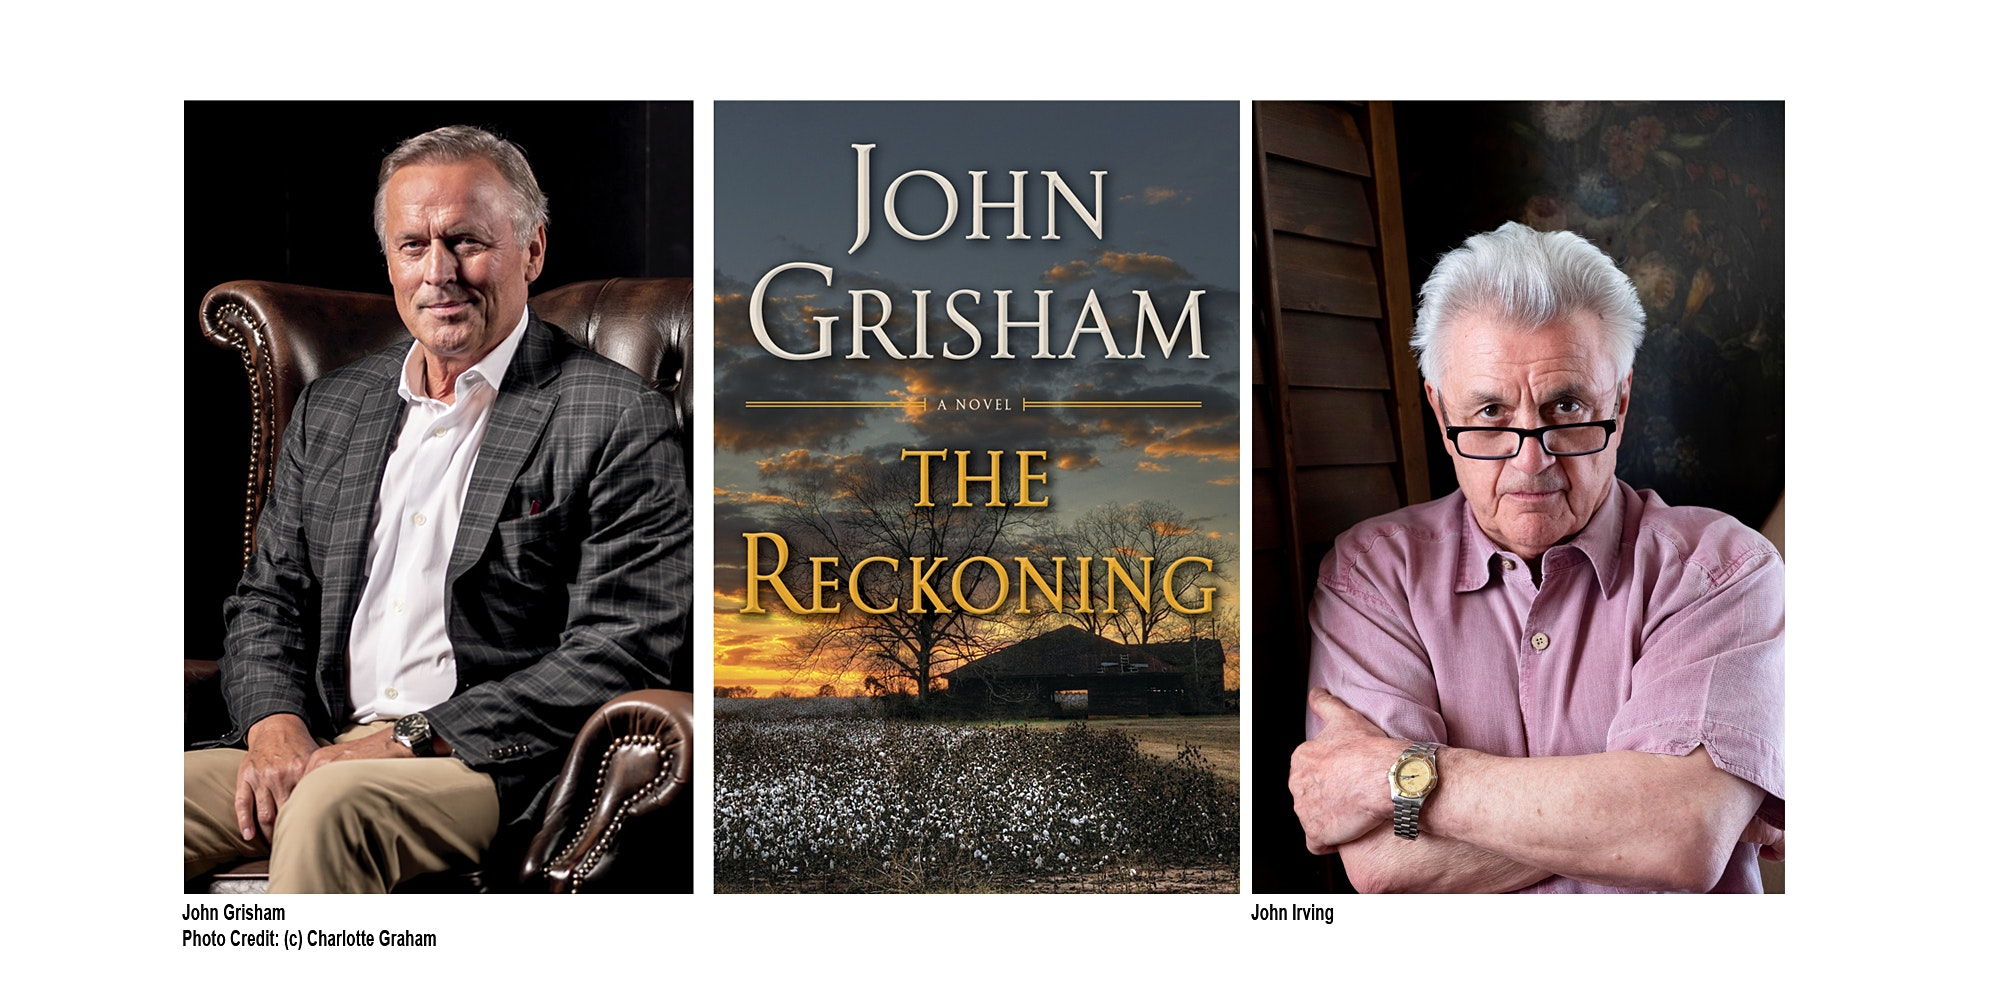 John Grisham and John Irving together on-stage in Toronto for the first time, Wednesday, February 20